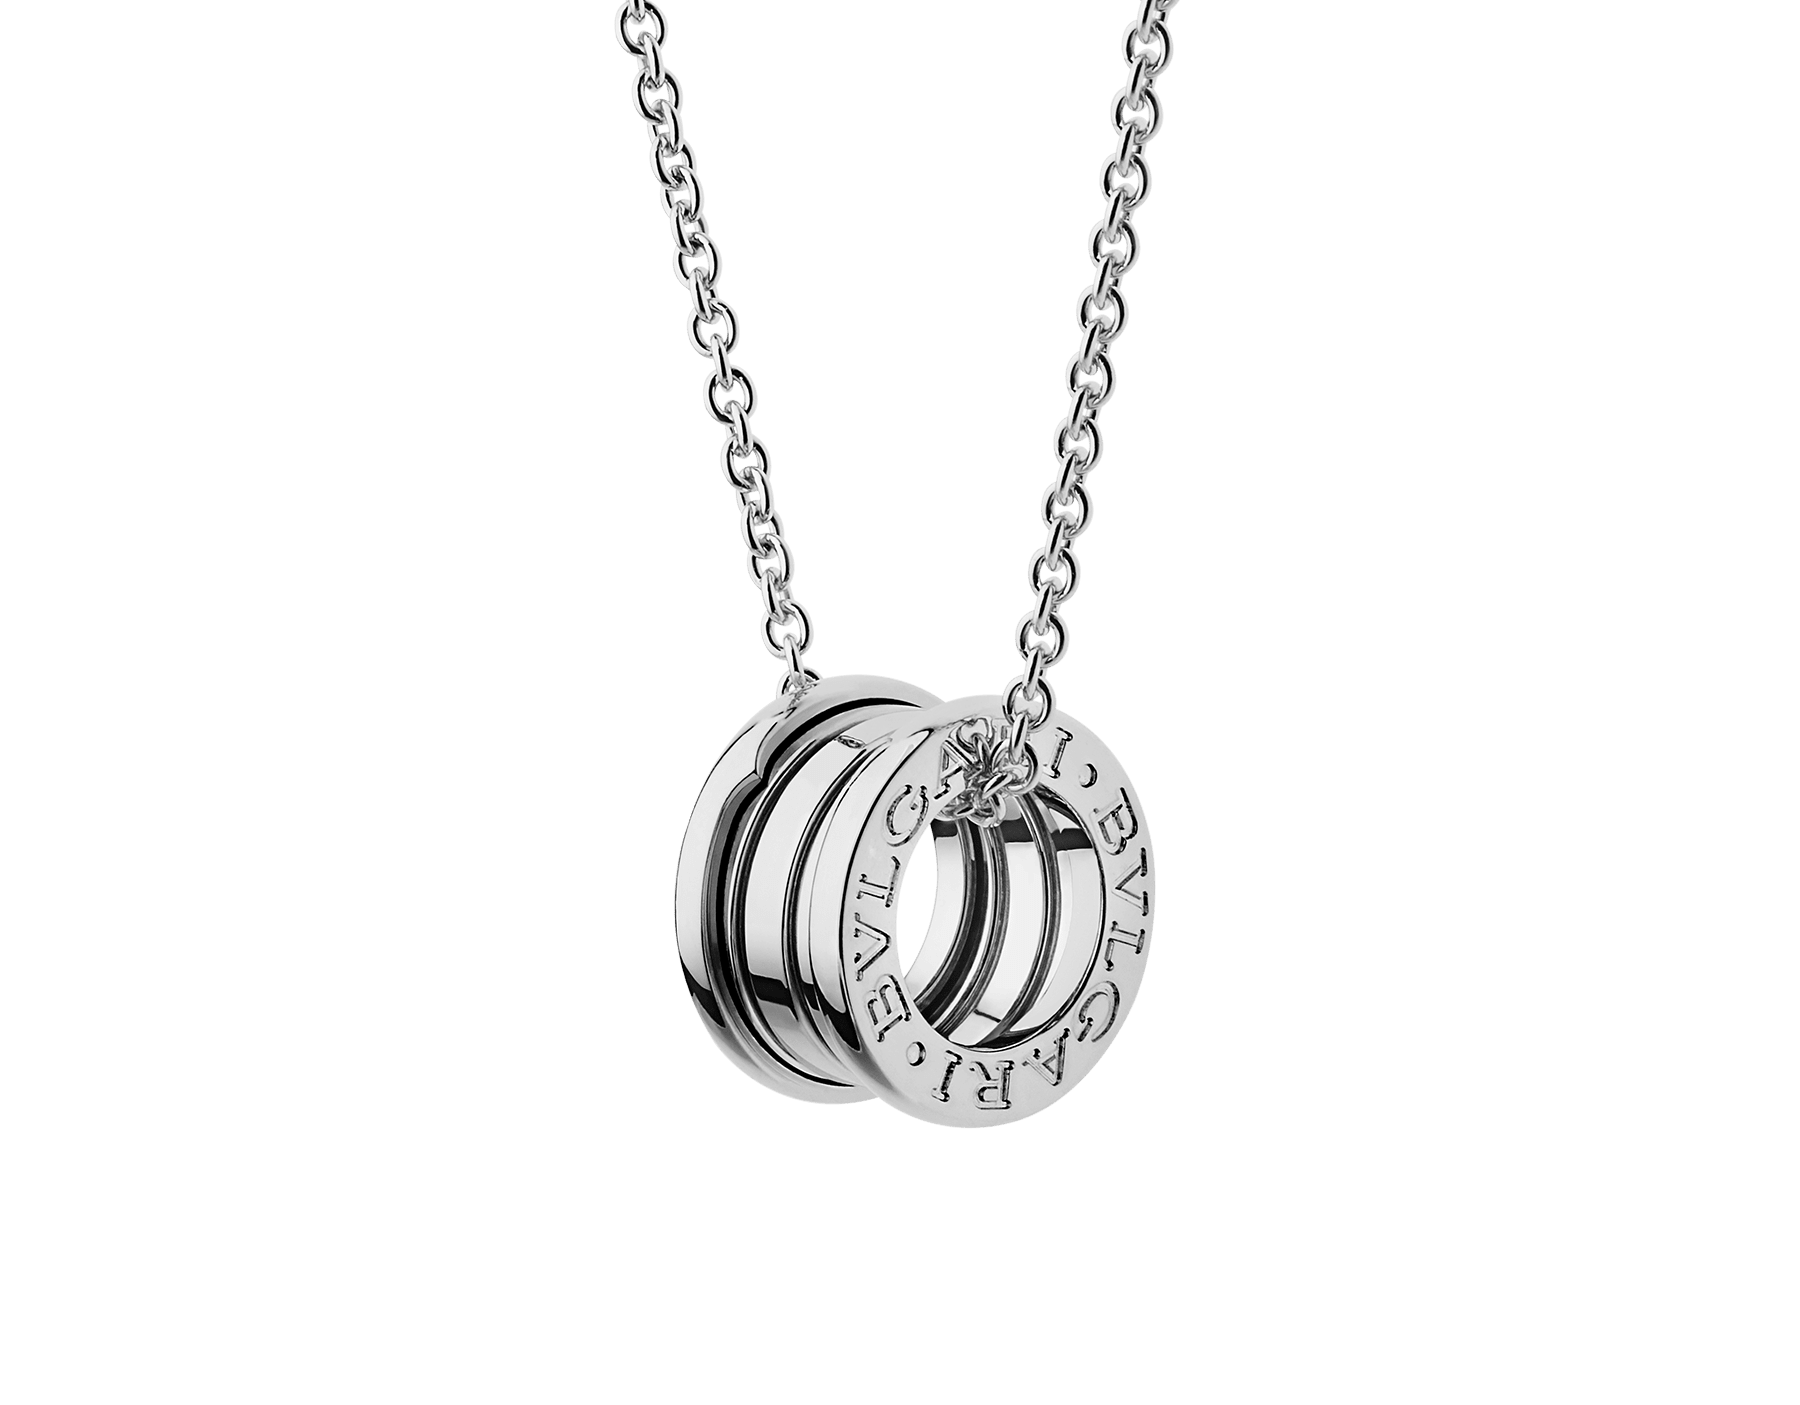 B.zero1 necklace with small round pendant, both in 18kt white gold. 352815 image 1